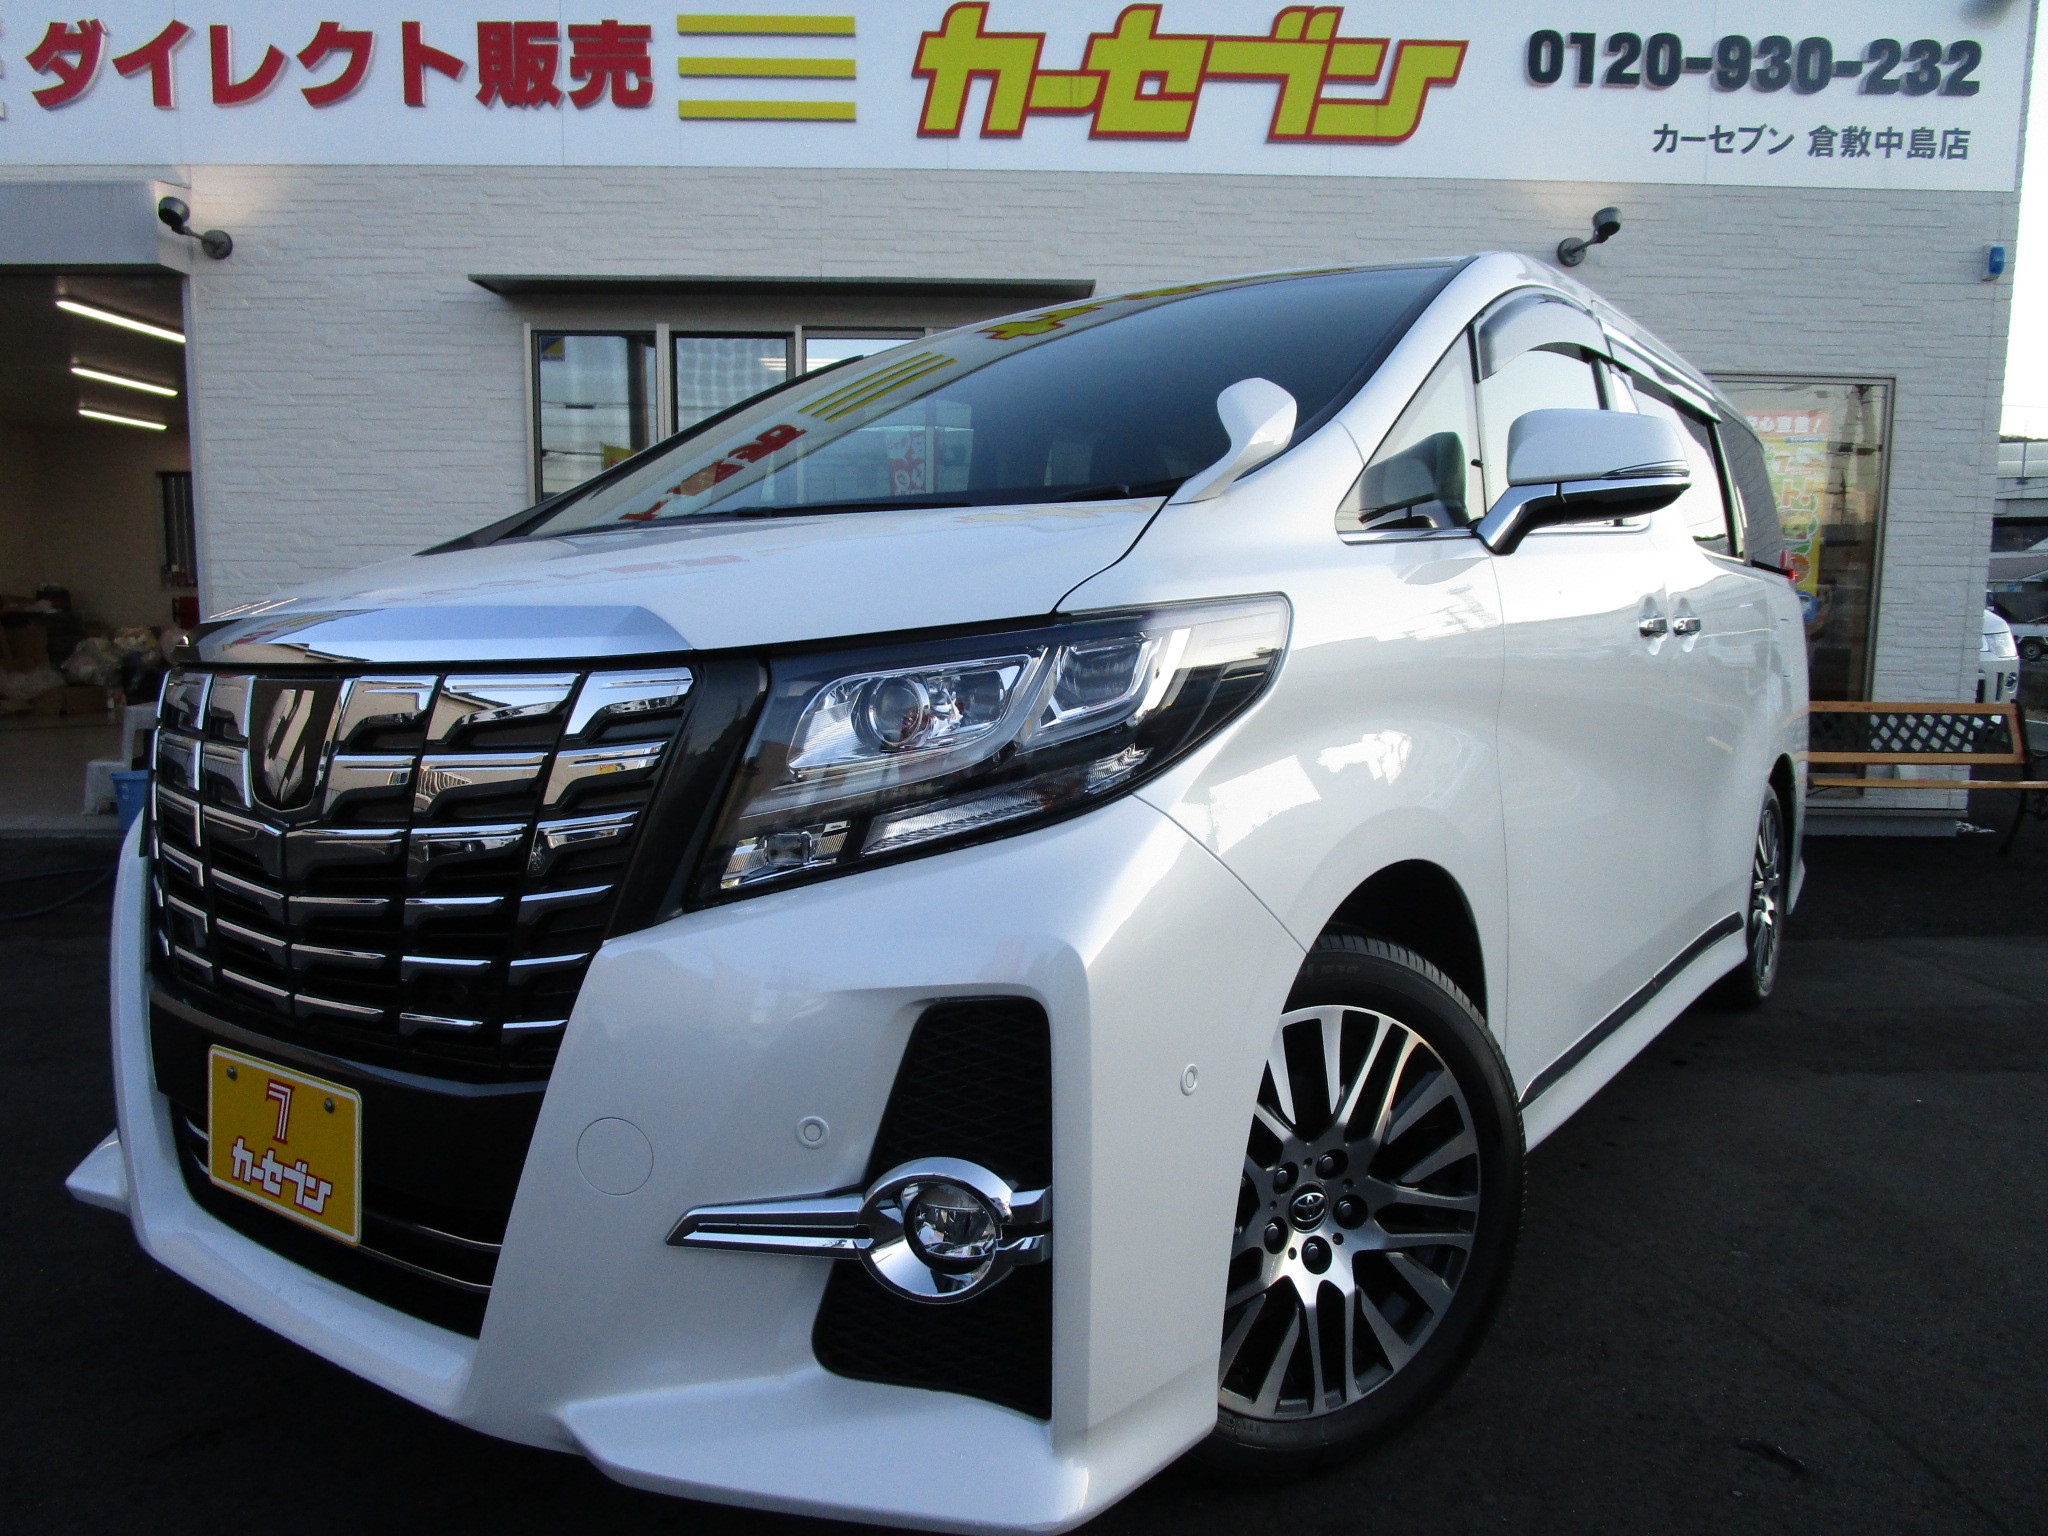 Japanese Cars for Sale Unique toyota Alphard 2015 for Sale Japanese Used Cars